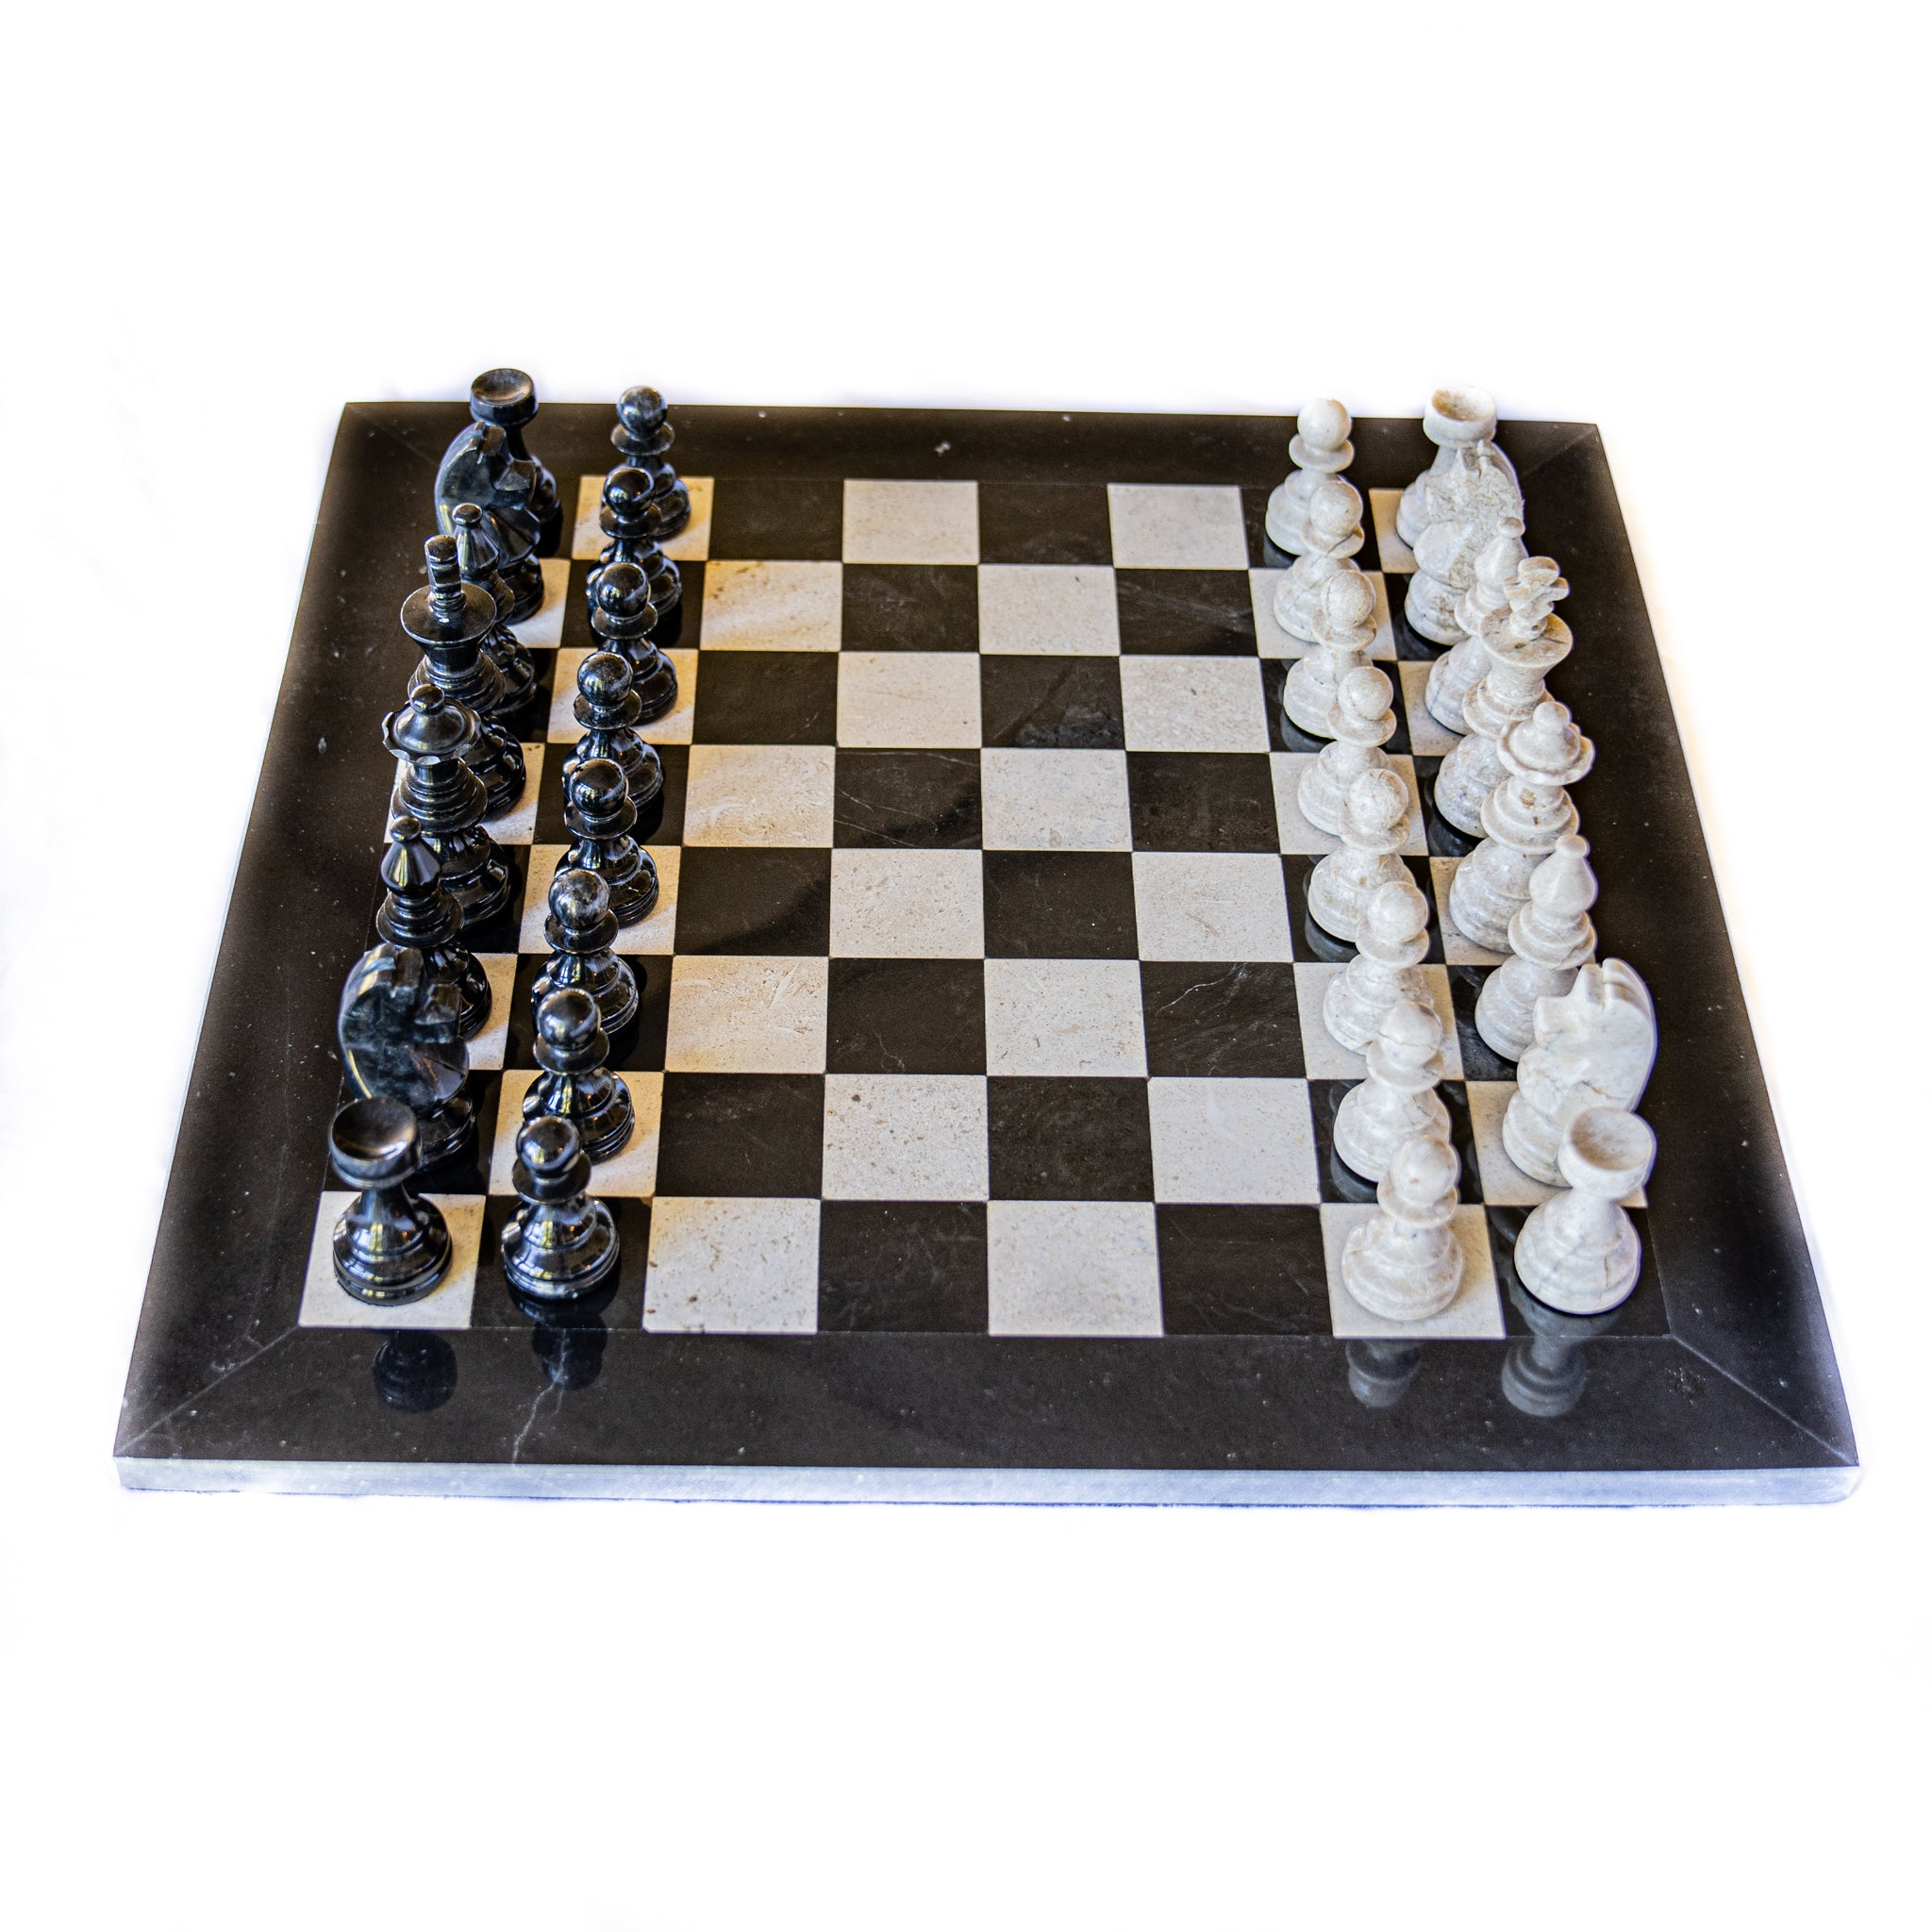 Large Marble Chess Set- Black and White with Fancy Chess Pieces- Black Border- 16""